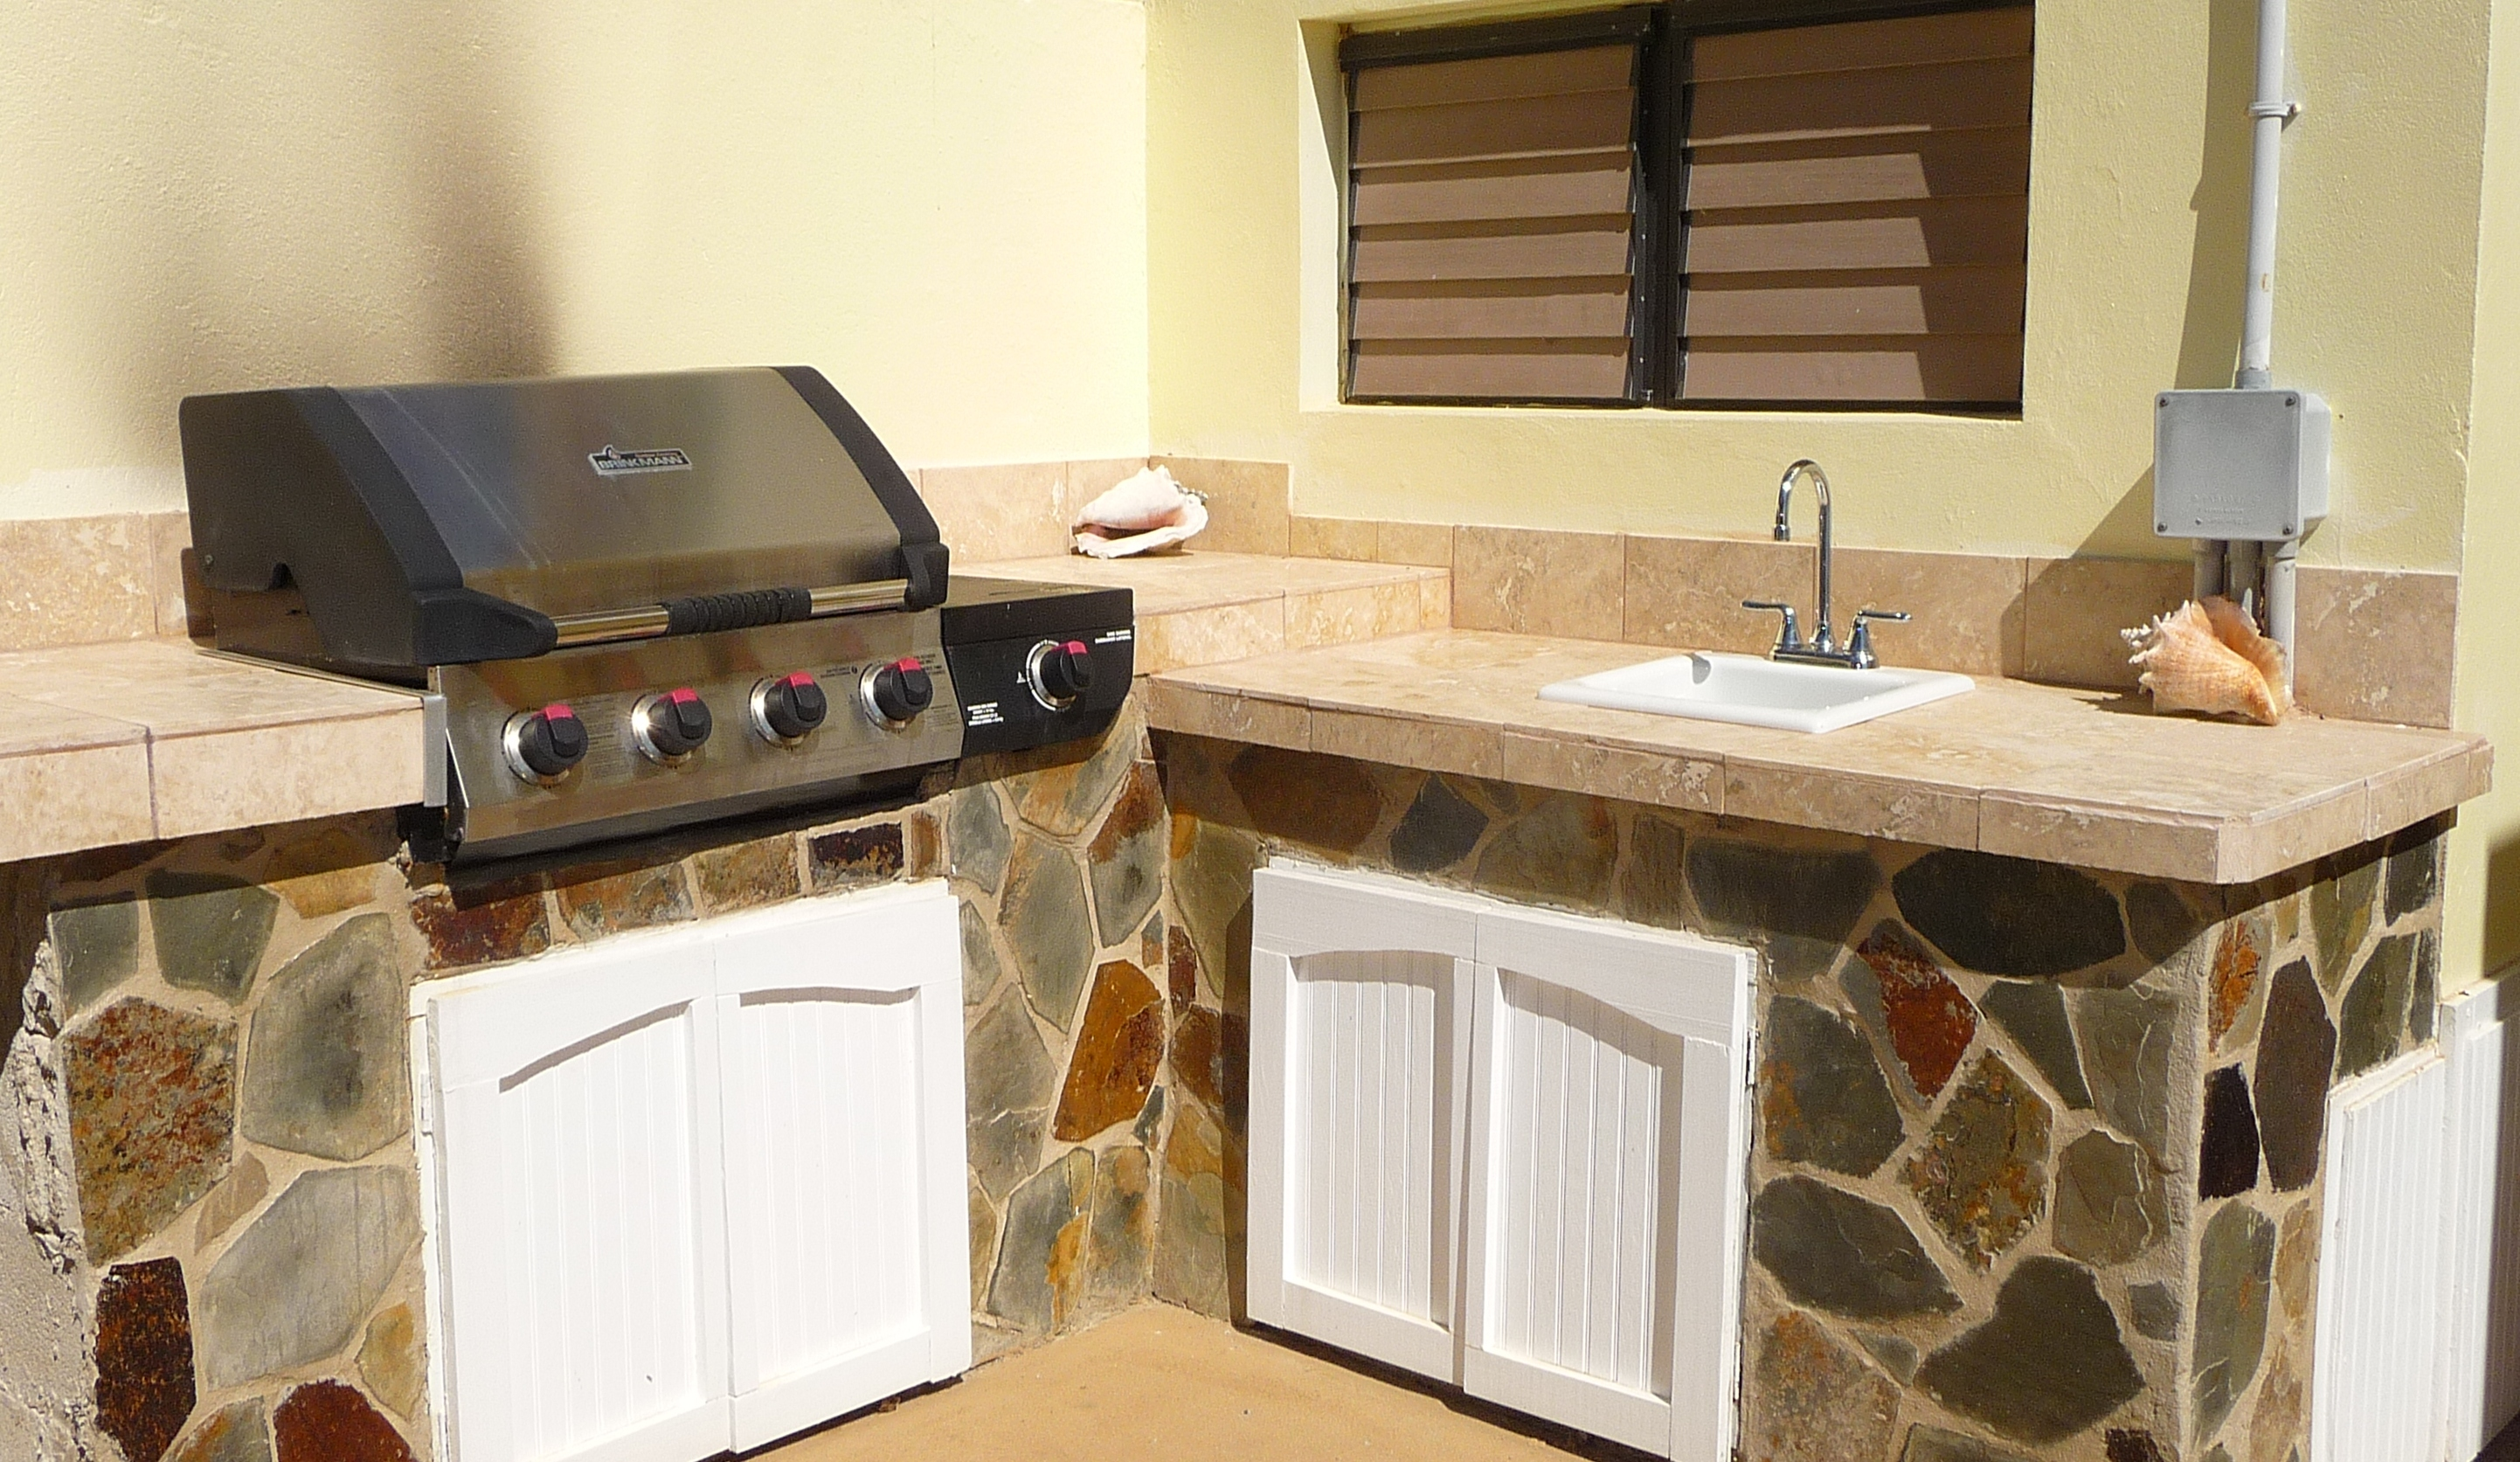 Gas Grill and Laundry Room